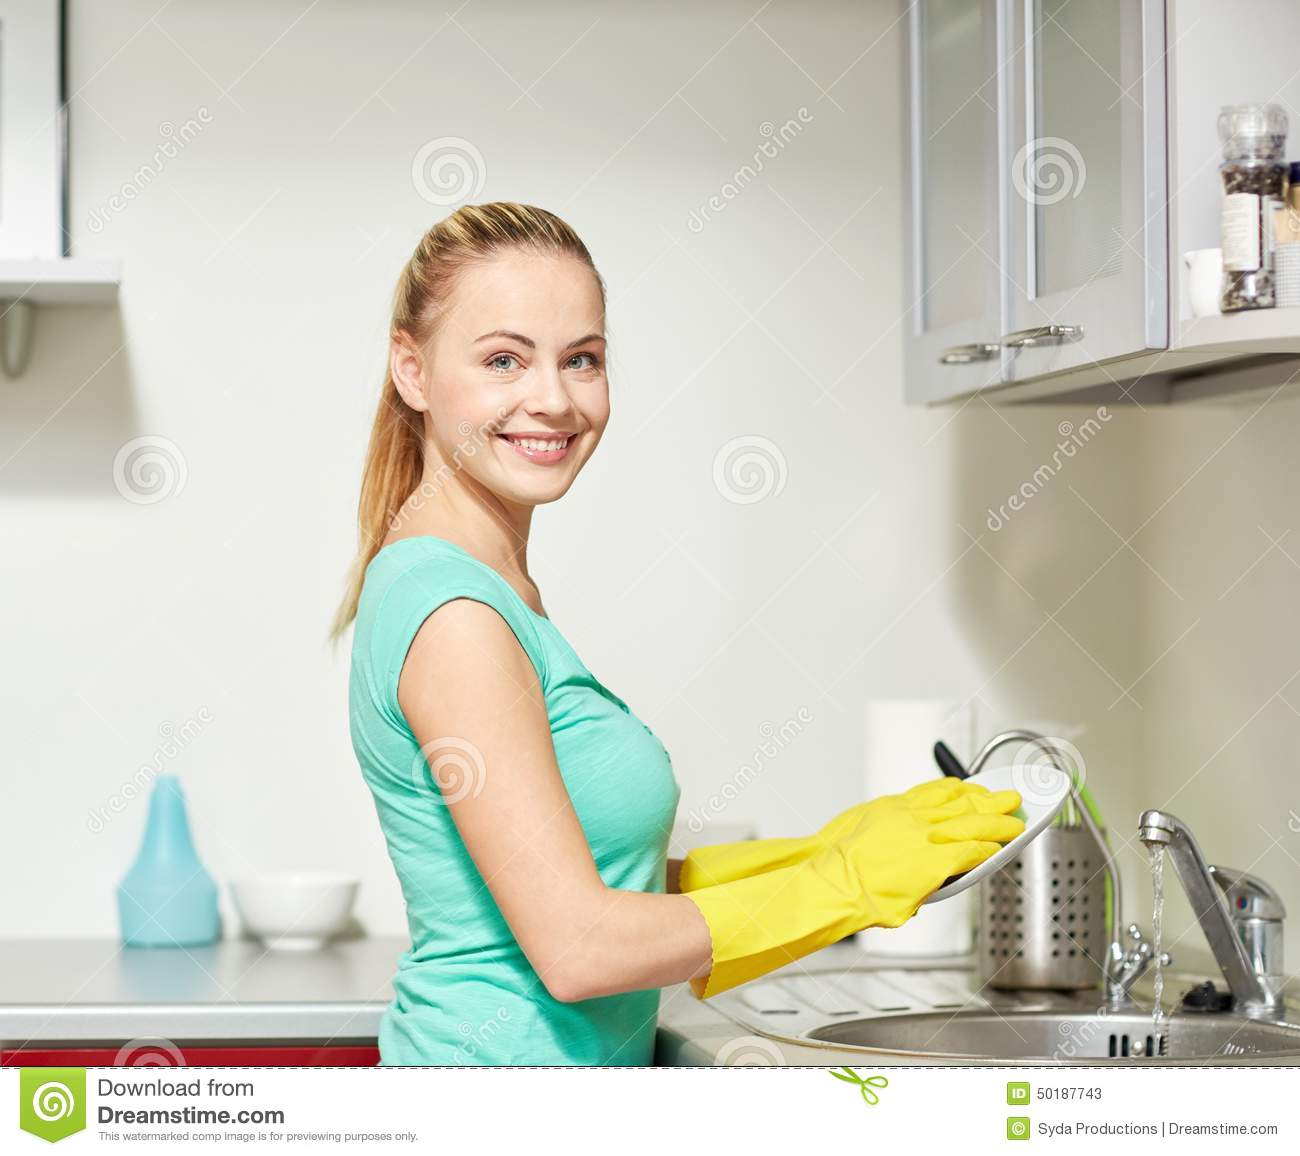 People Cleaning Kitchen